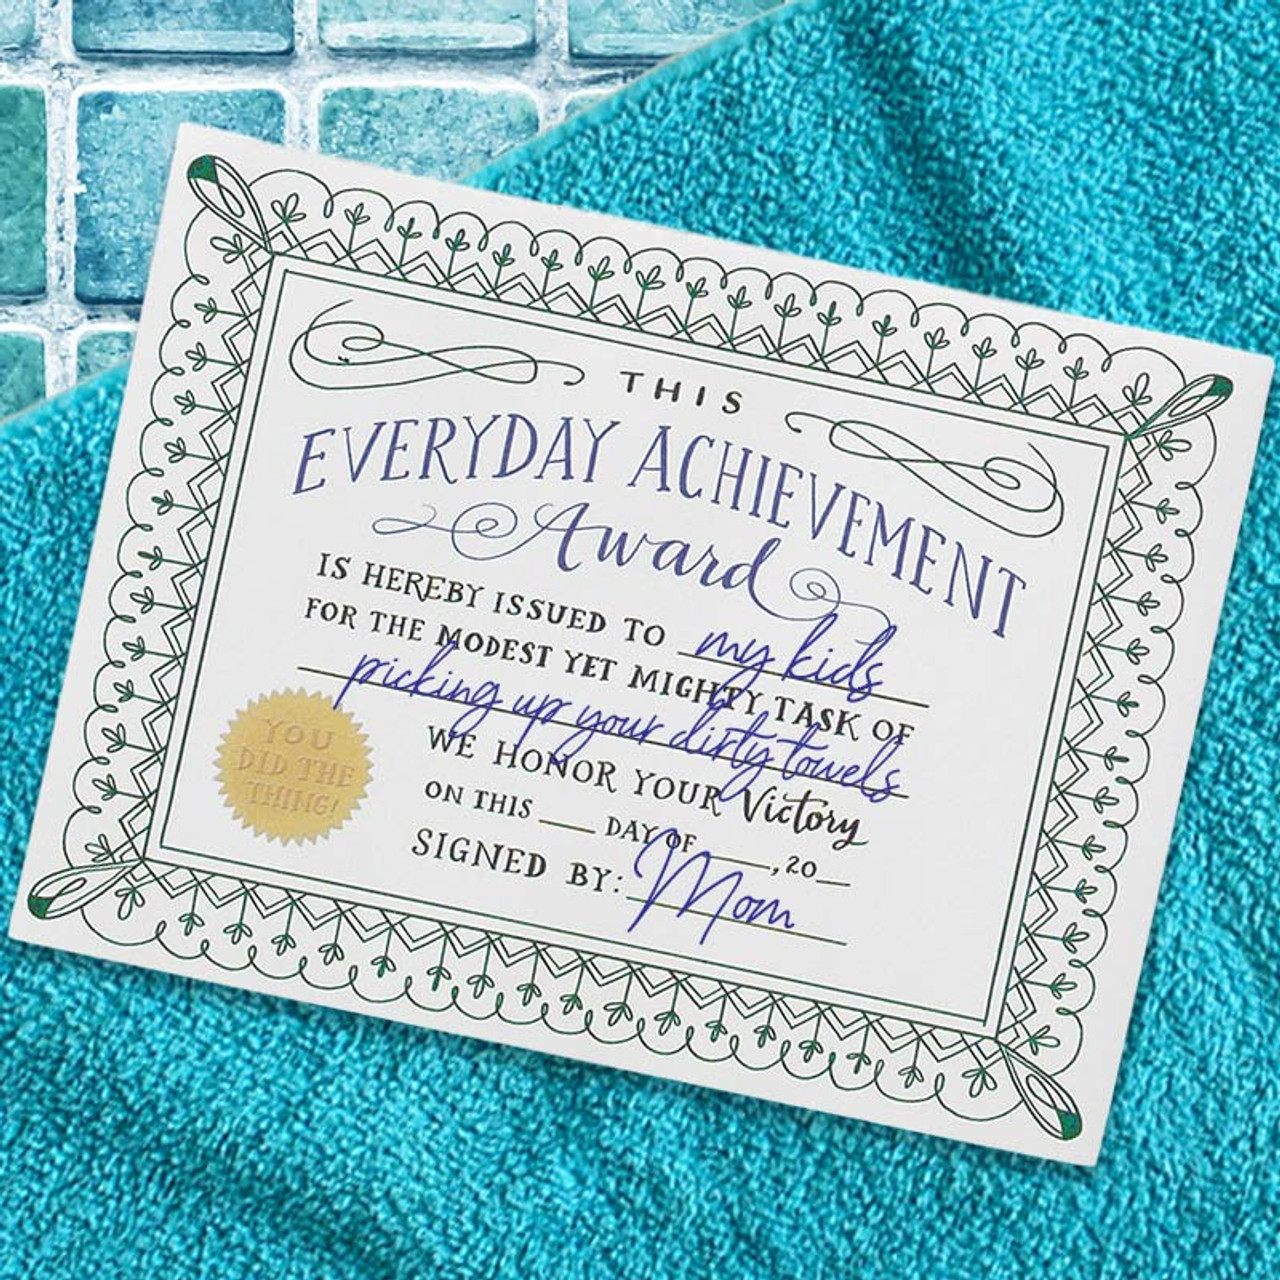 Achievement Award Notepad for big and small moments!